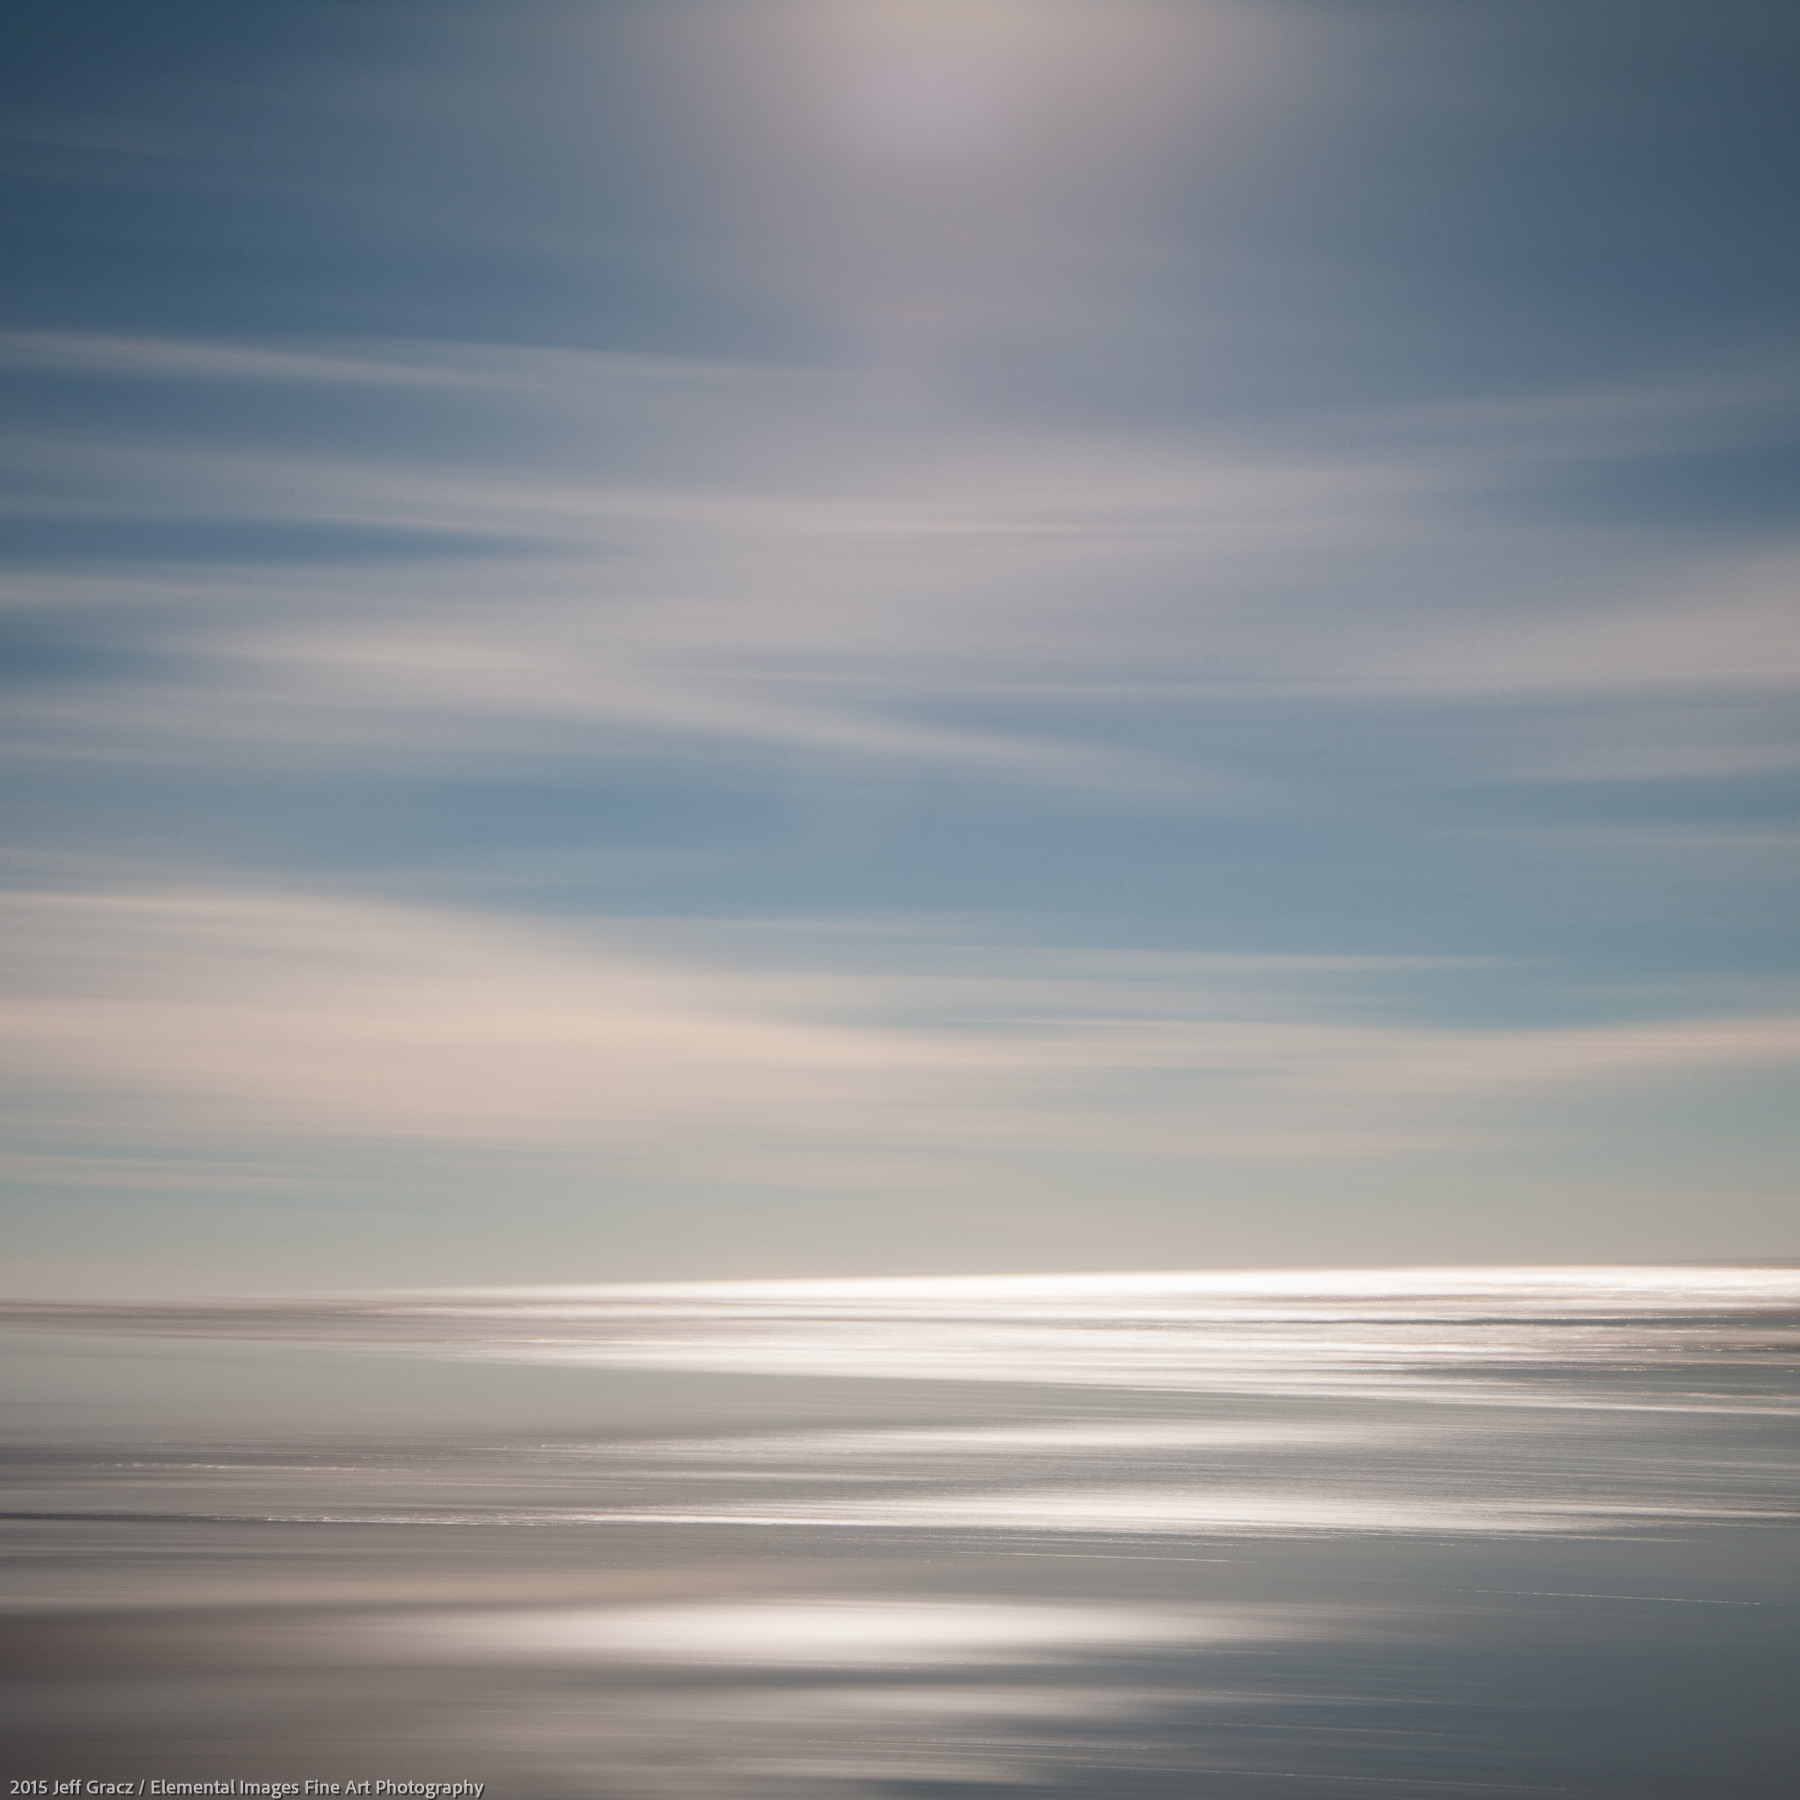 Sea and Sky XLVI | Long Beach | WA | USA - © 2015 Jeff Gracz / Elemental Images Fine Art Photography - All Rights Reserved Worldwide